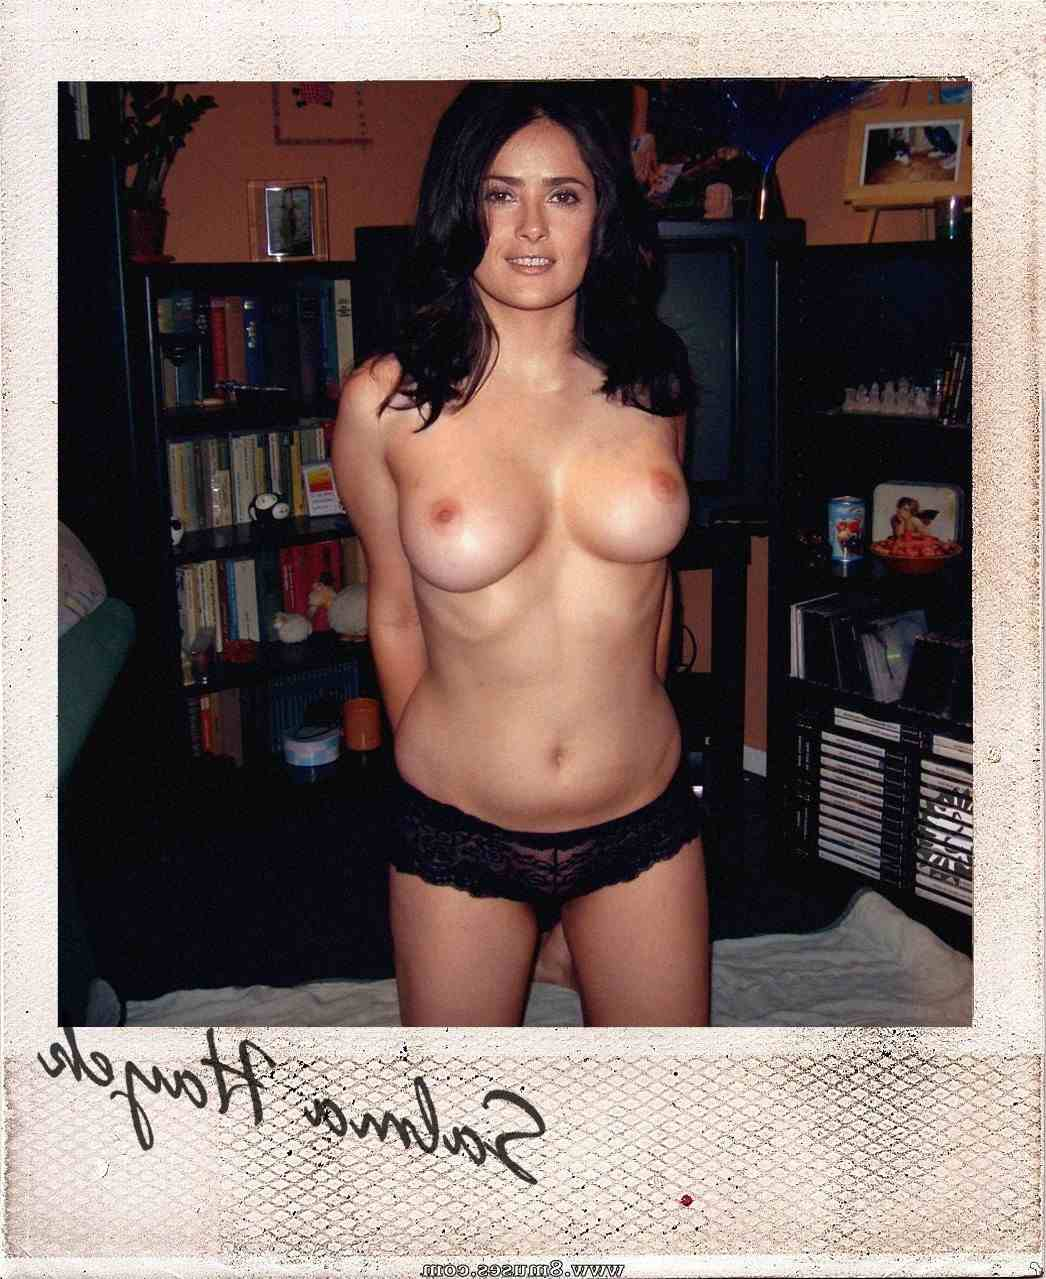 Fake-Celebrities-Sex-Pictures/Salma-Hayek Salma_Hayek__8muses_-_Sex_and_Porn_Comics_112.jpg